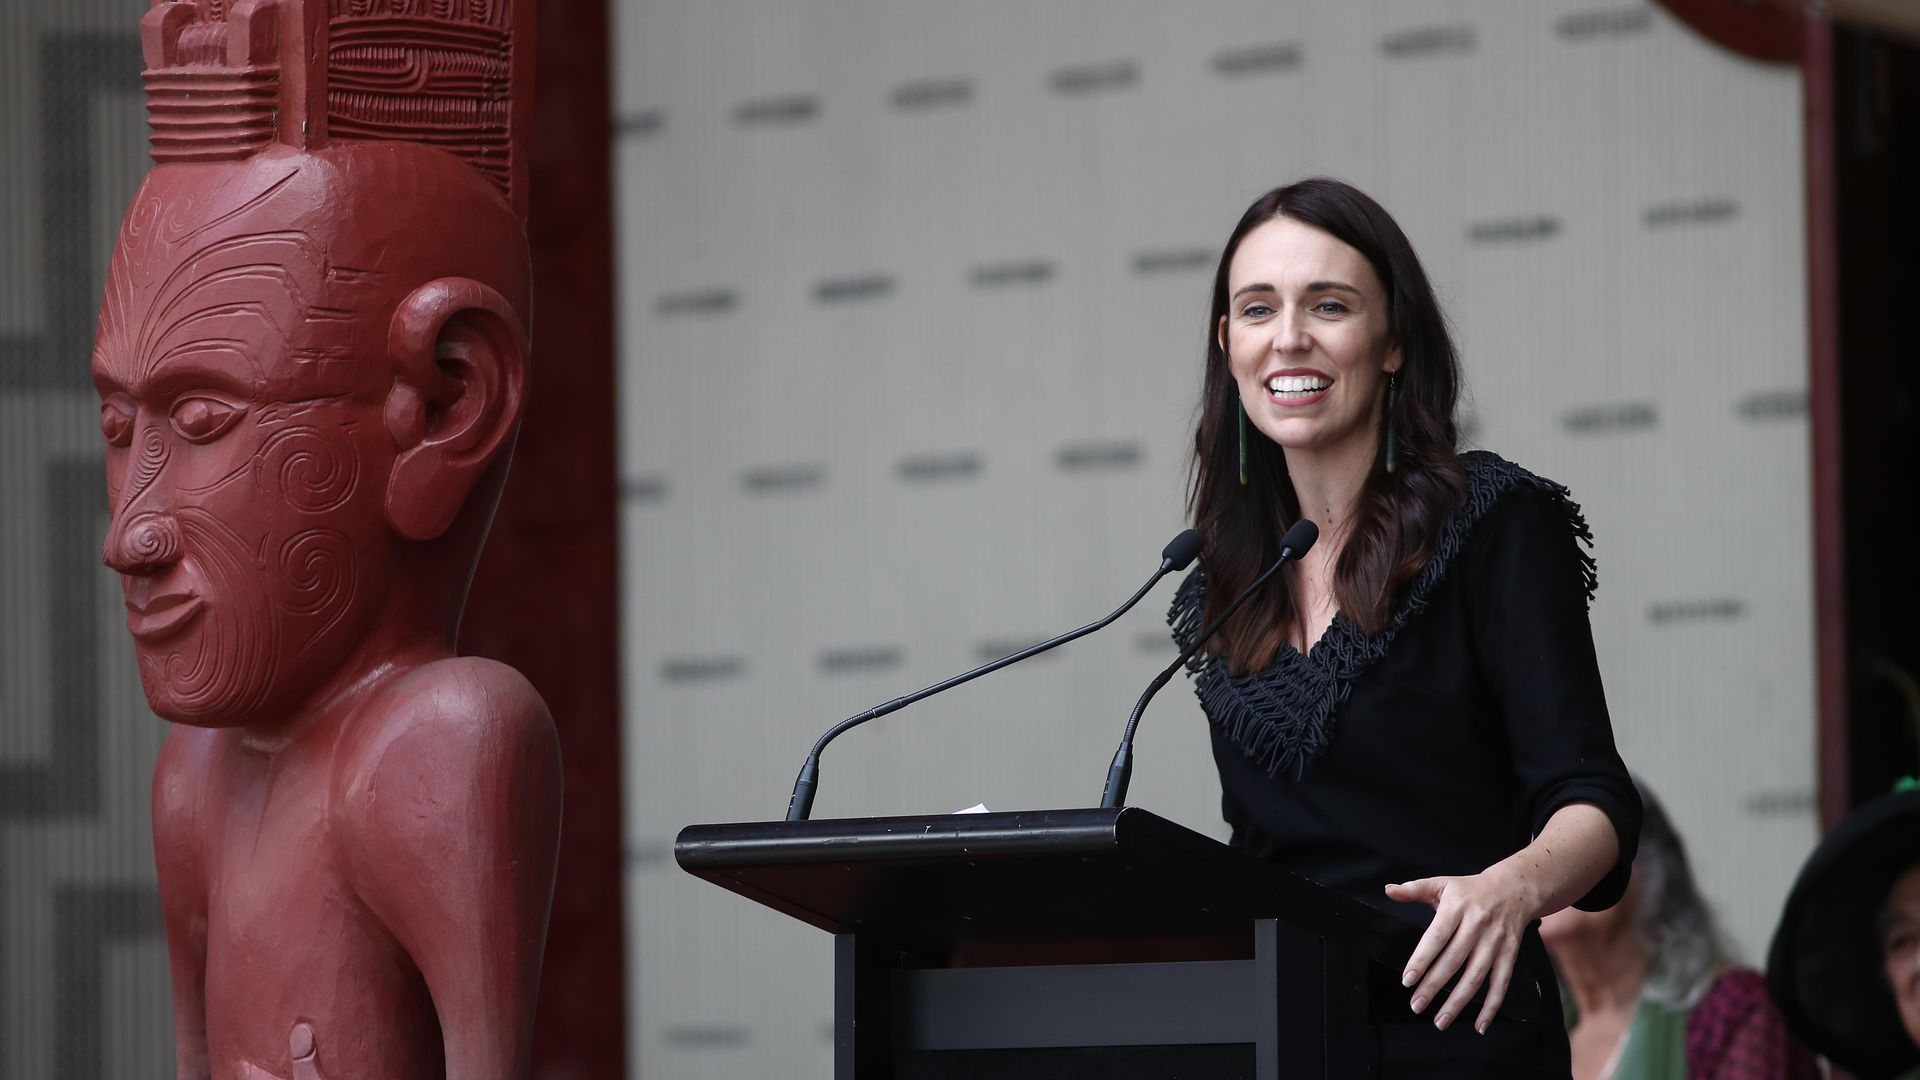 New Zealand Prime Minister Jacinda Ardern supports student climate change protesters.